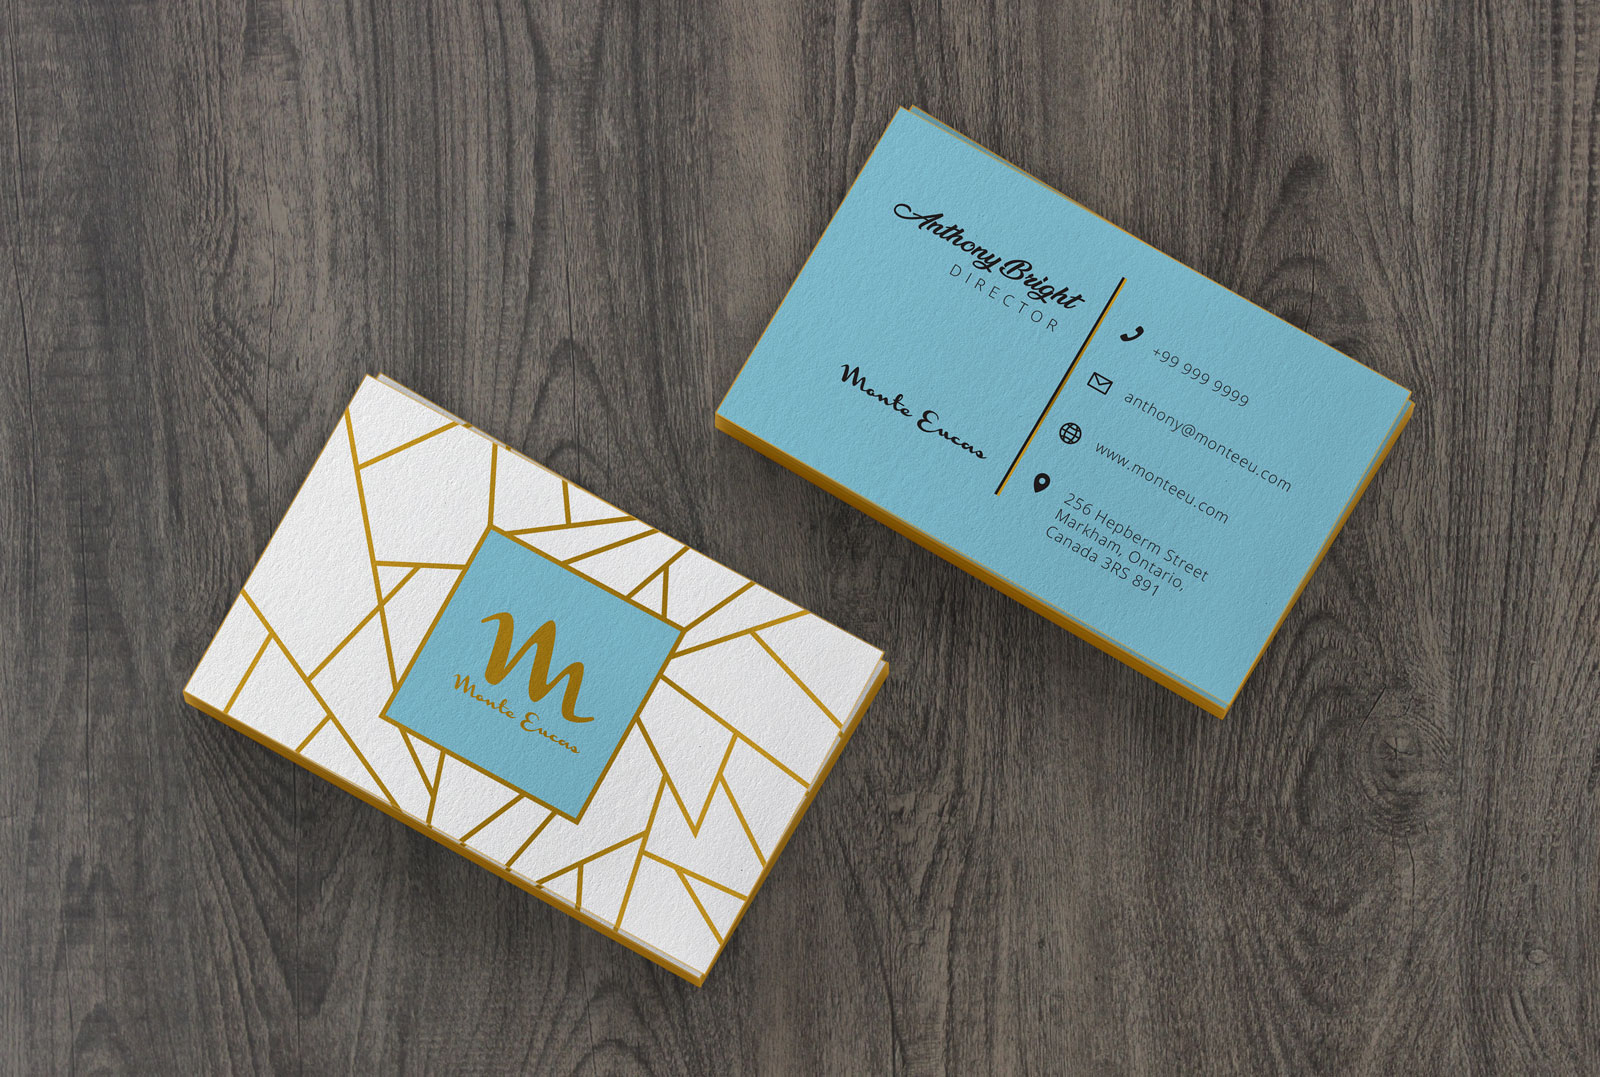 Free Colored Edge Business Card Mockup PSD